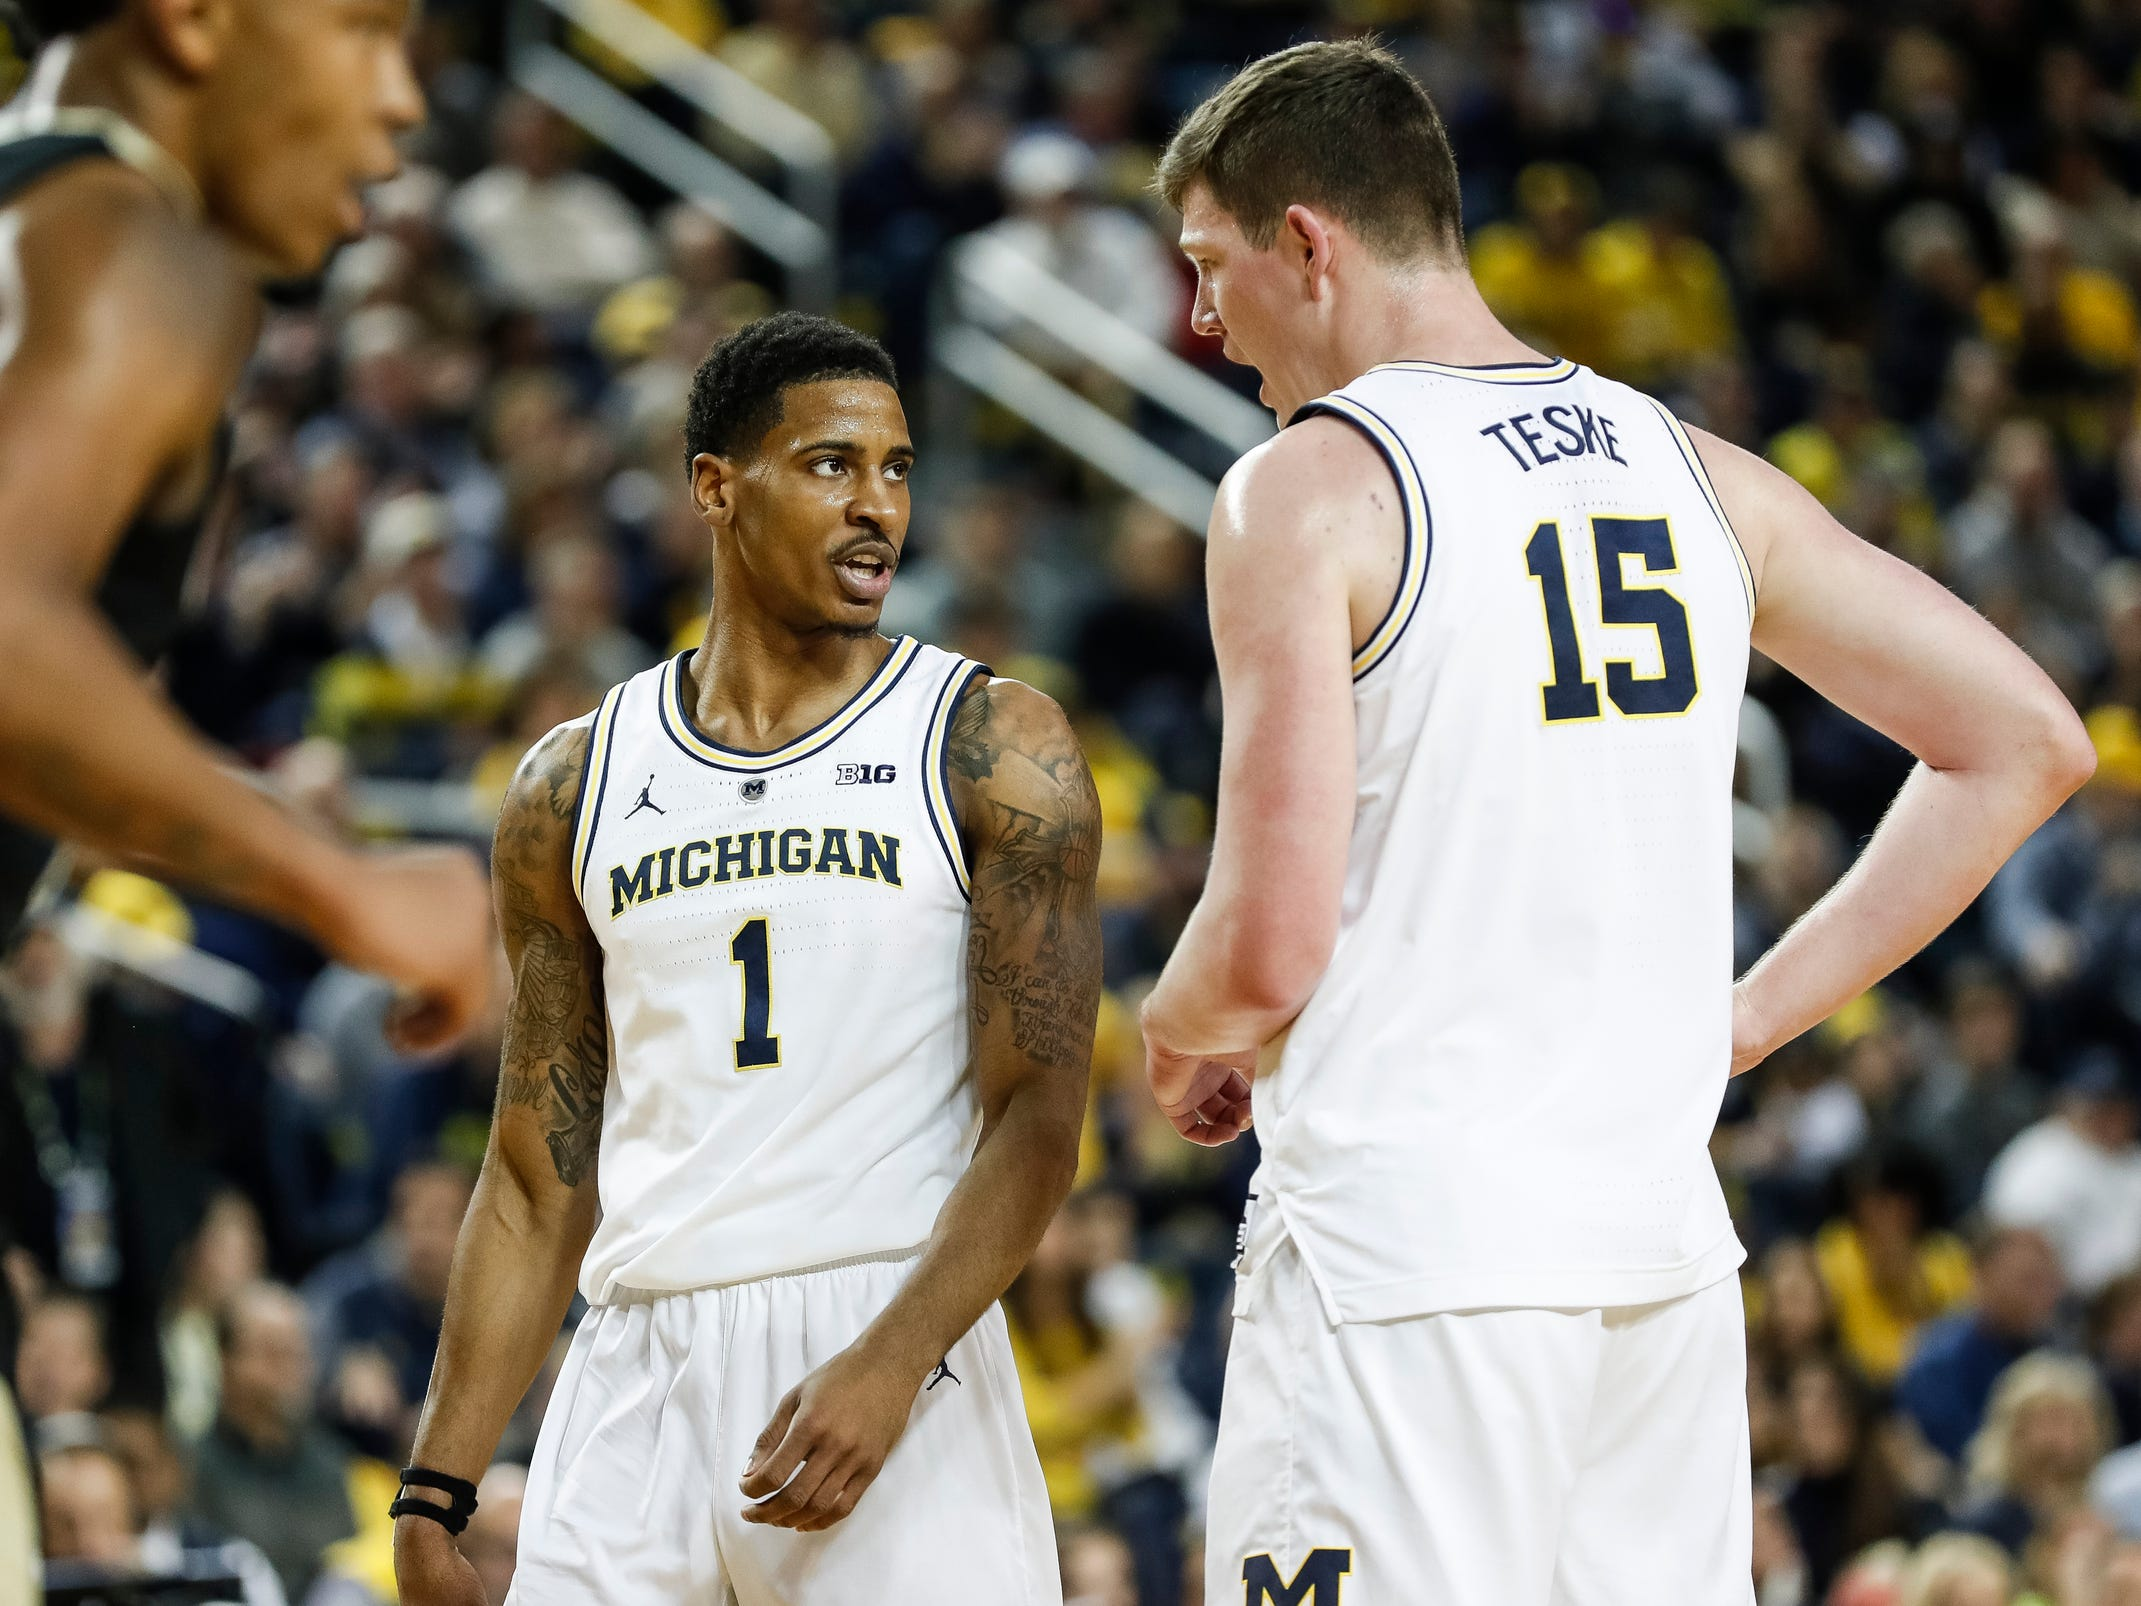 Michigan guard Charles Matthews (1) talks to center Jon Teske (15) during the first half against Purdue at Crisler Center on Saturday, Dec. 1, 2018.